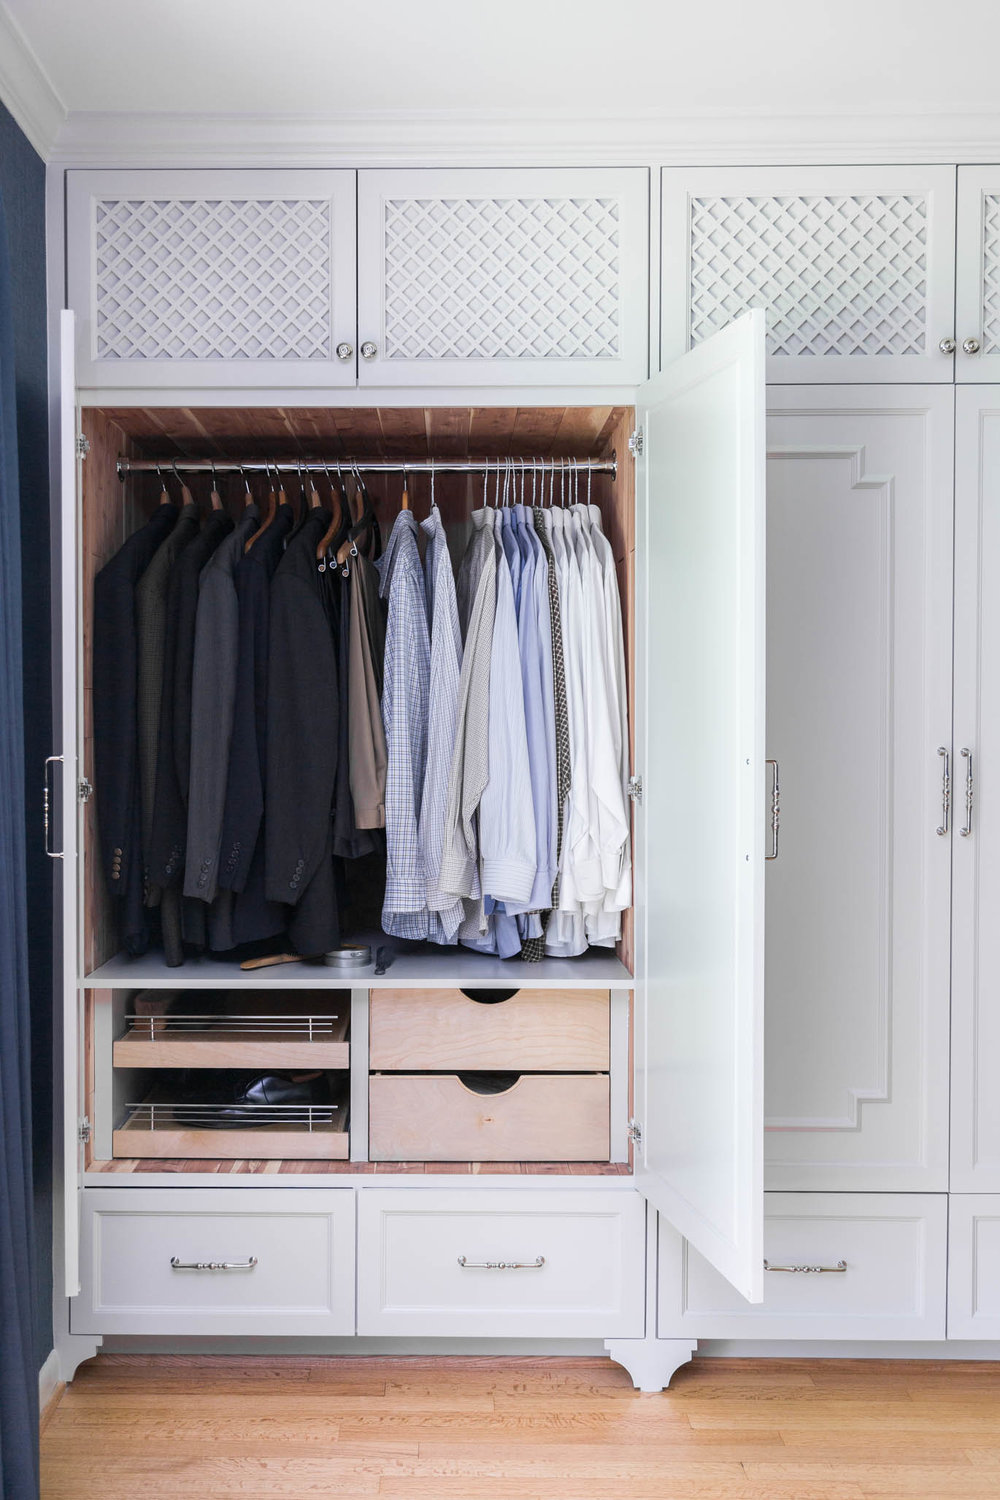 Master bedroom closet in cabinetry | Designer- Carla Aston, Photographer- Tori Aston